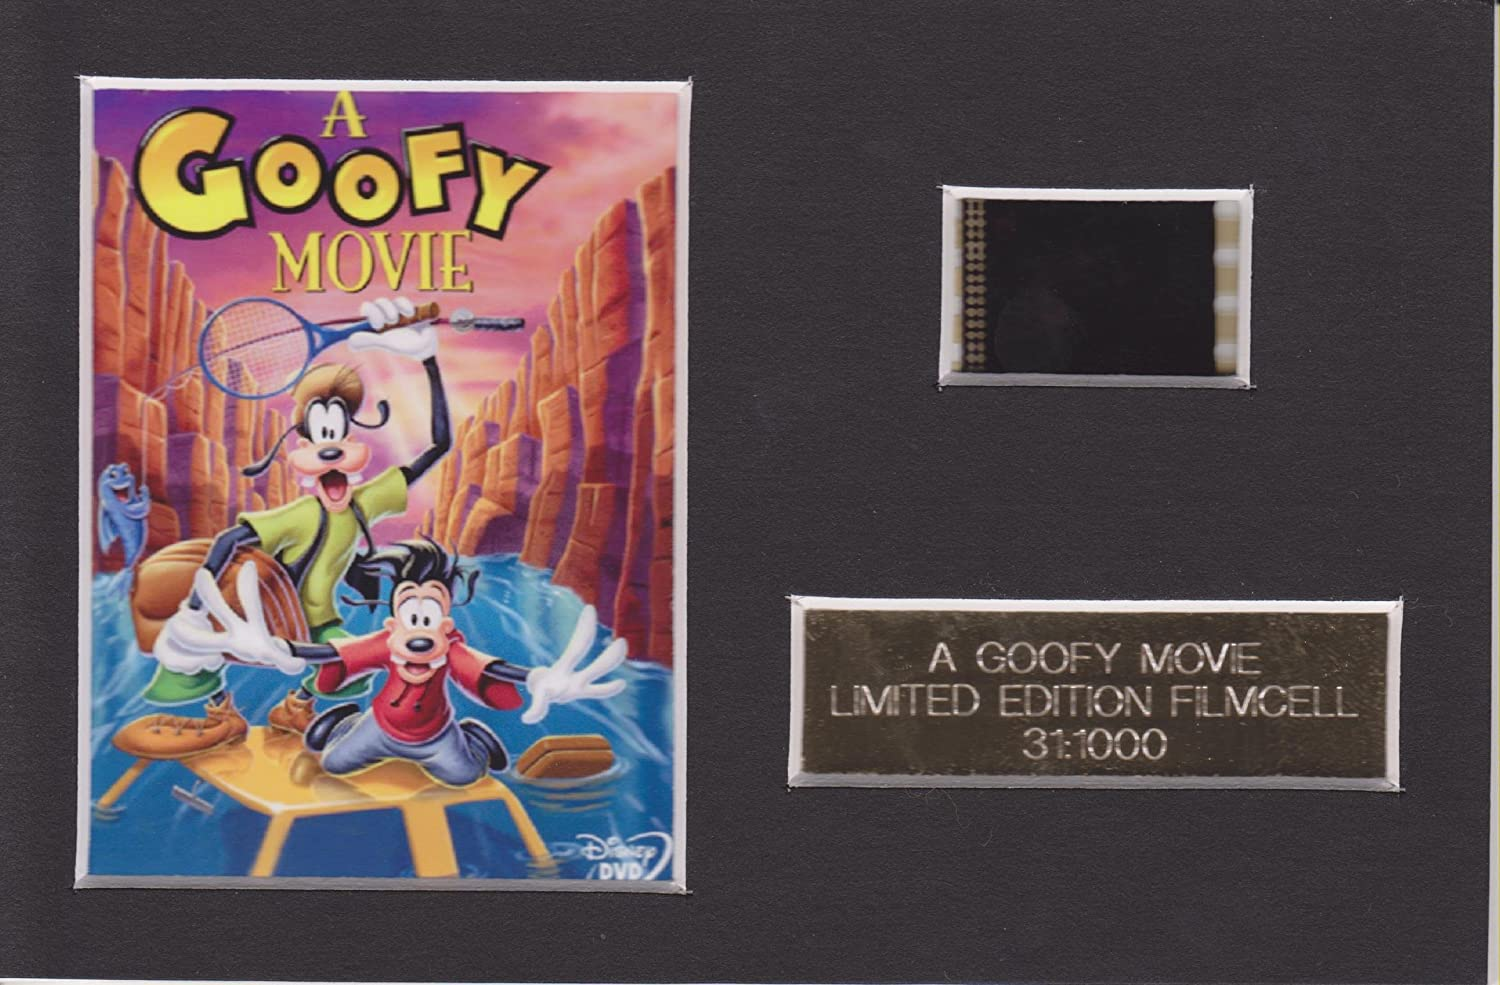 A Goofy Movie Limited Edition Film Cell m